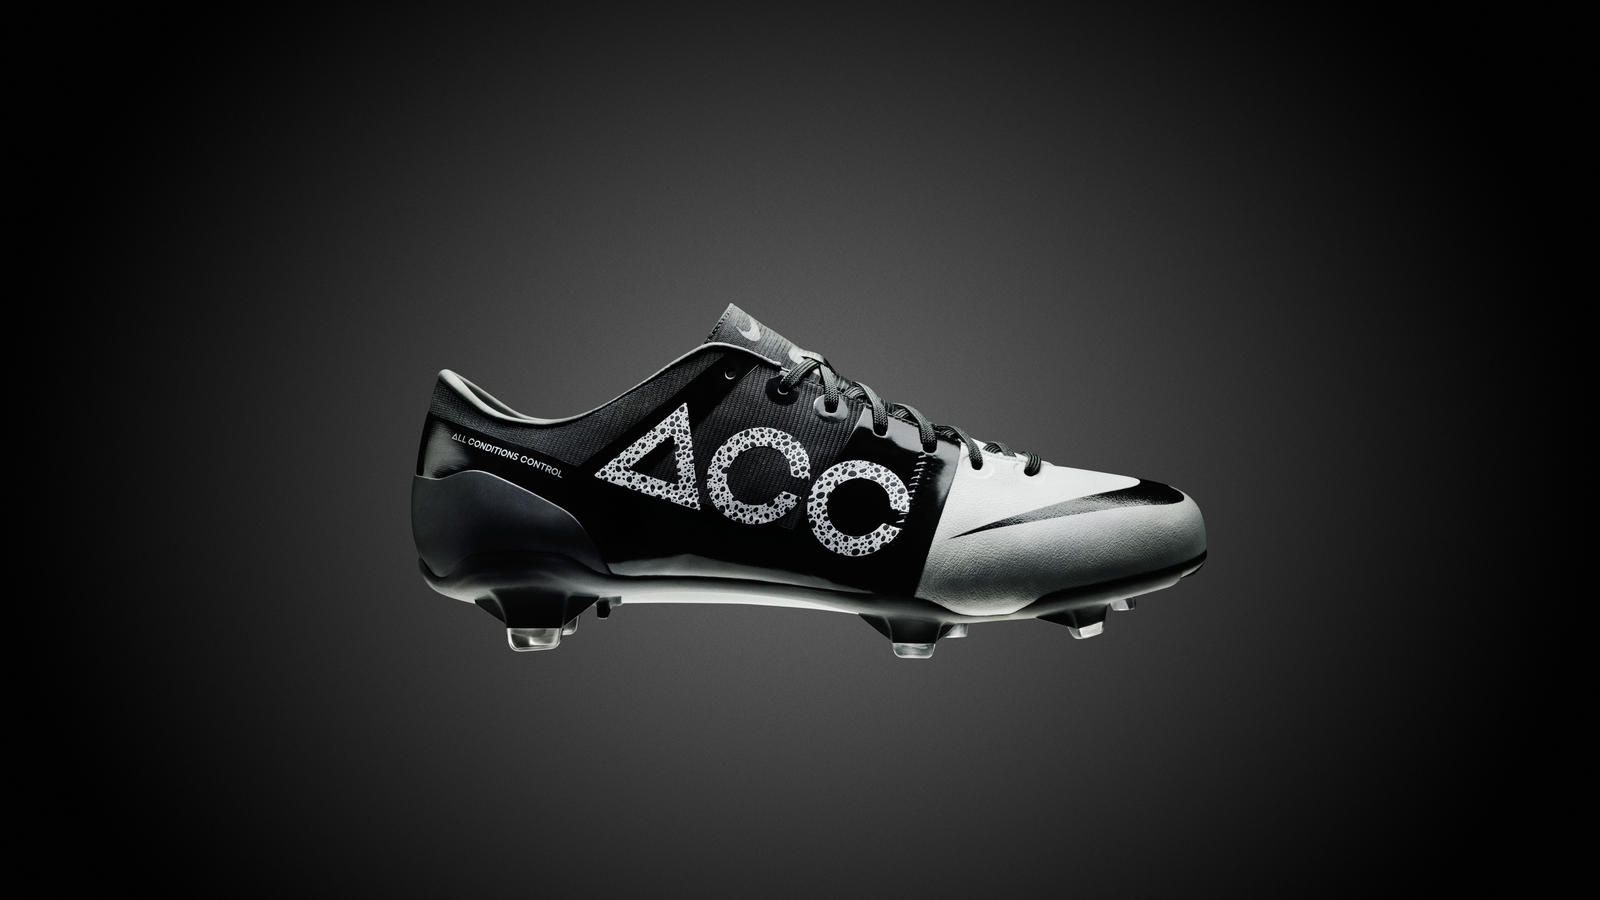 Nike GS 2 boot delivers seamless ball control, low